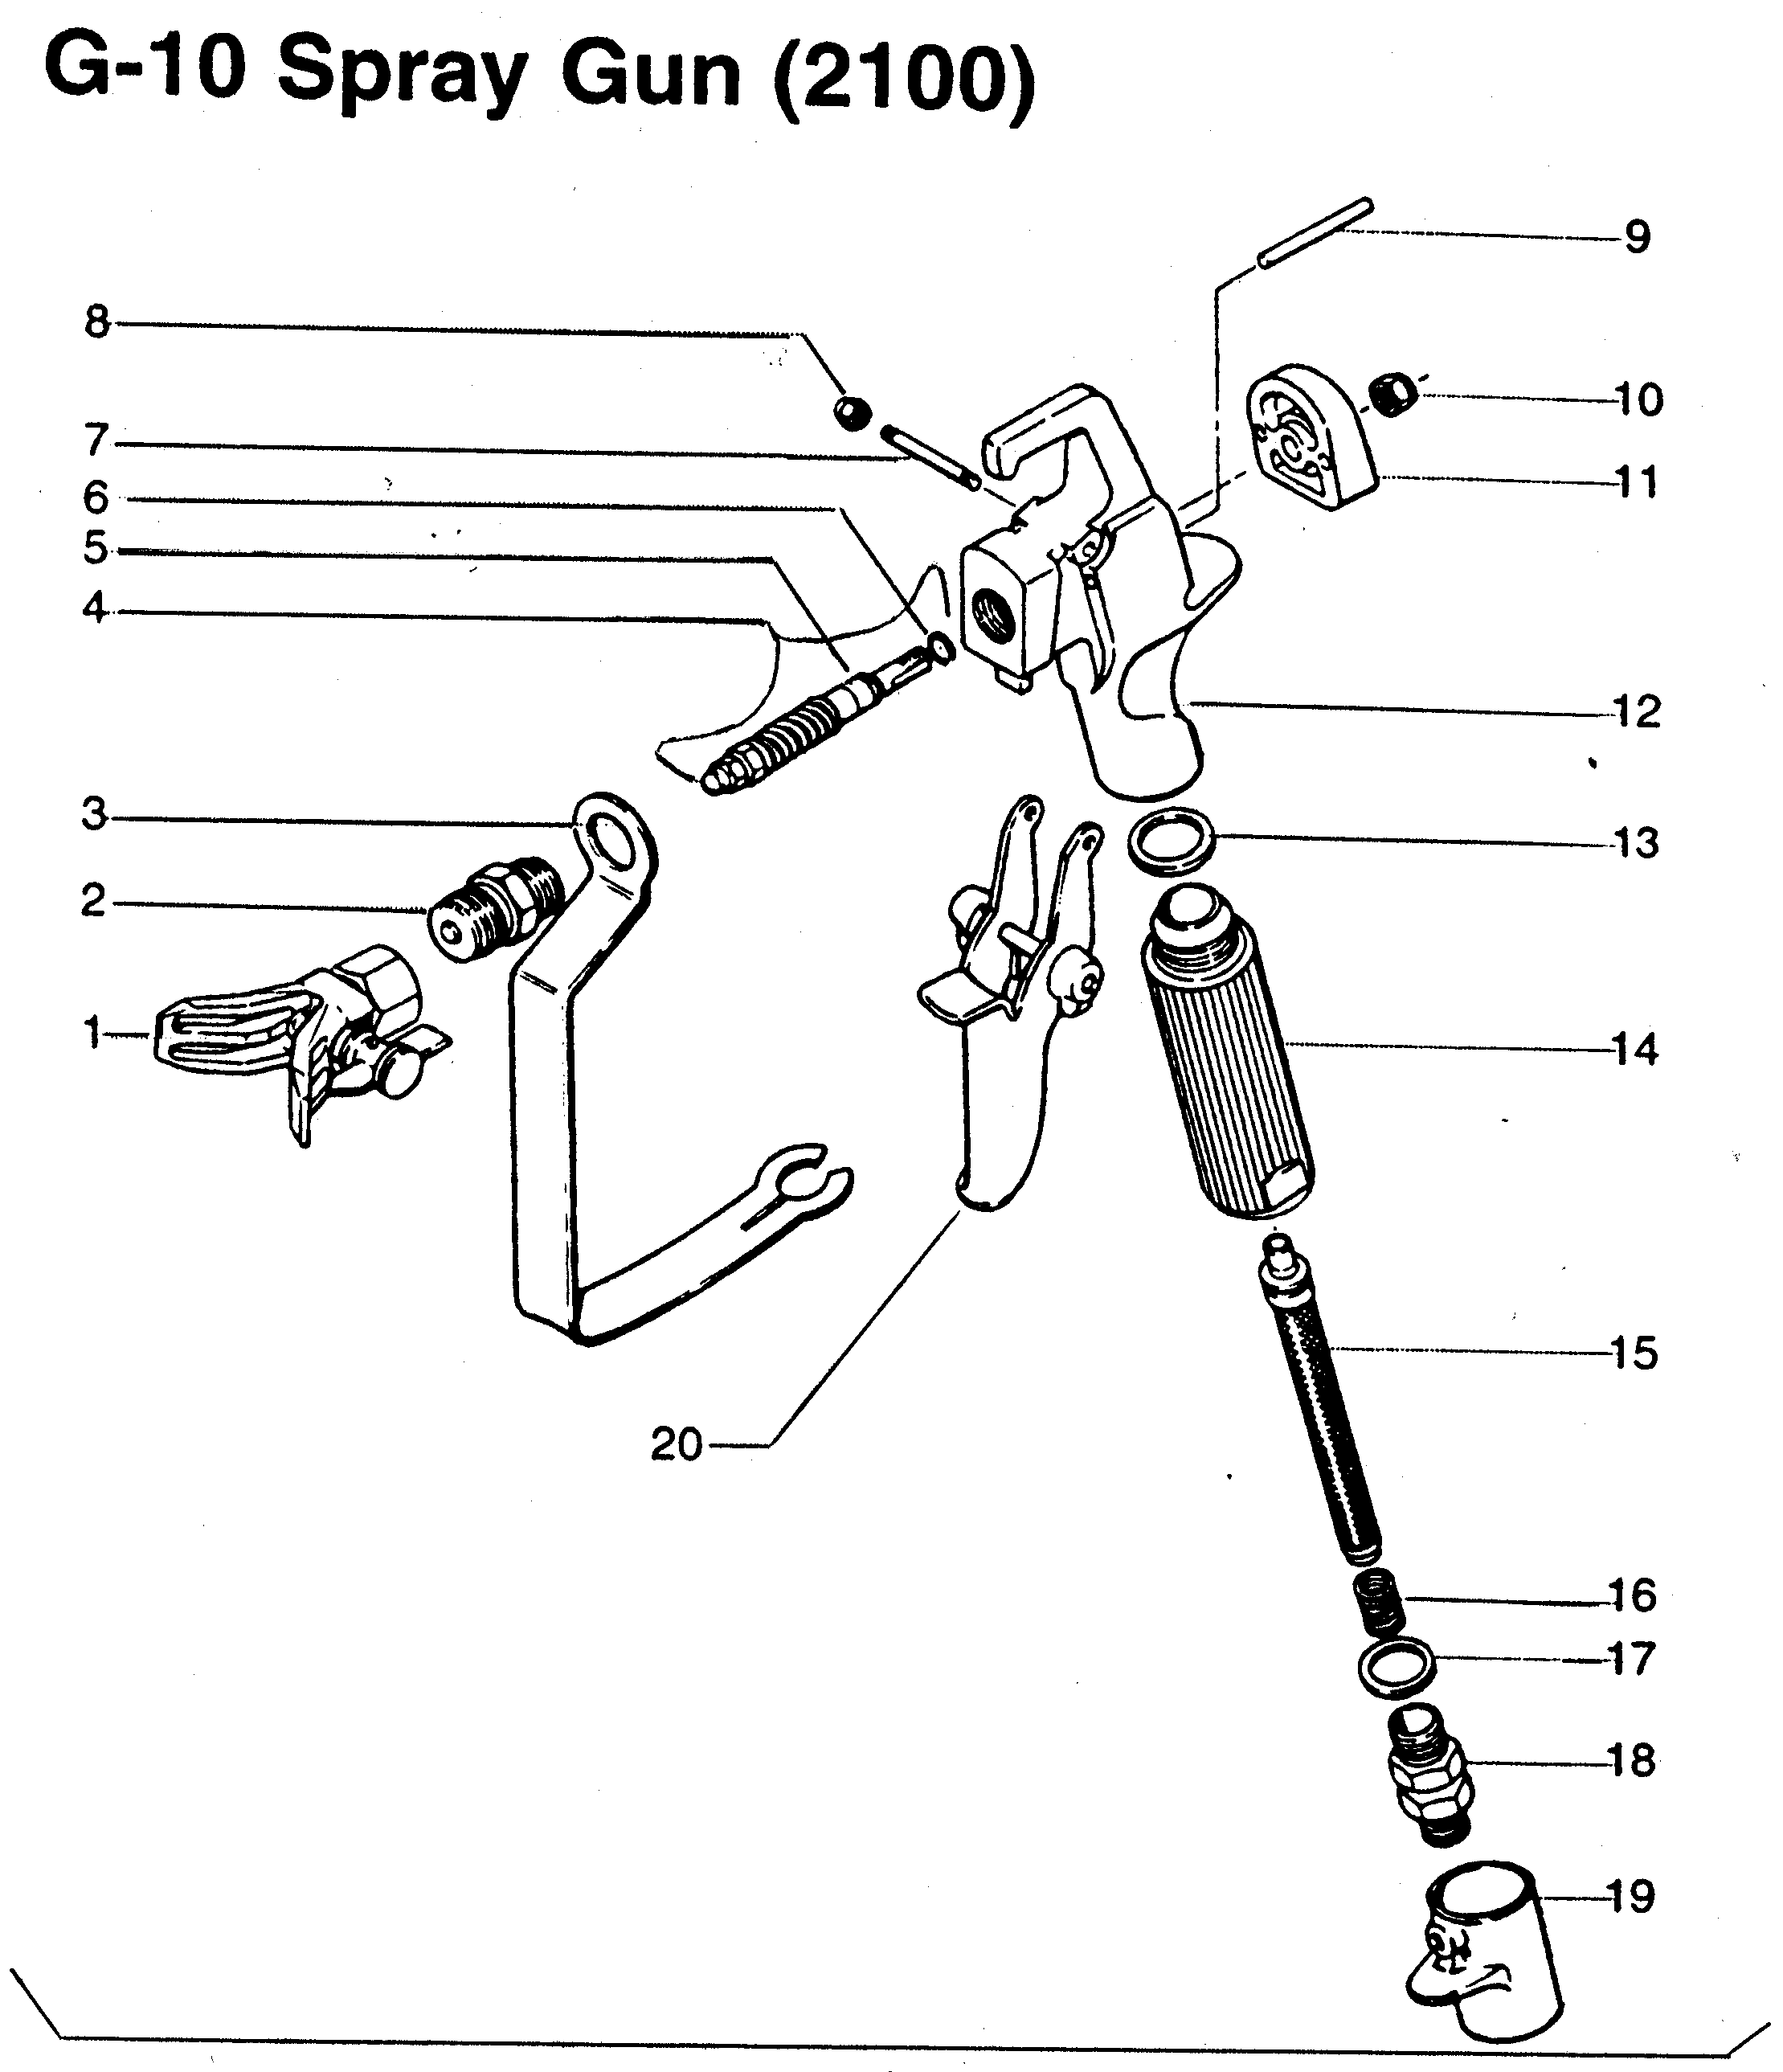 Wagner Paint Sprayer Parts Diagram, Wagner, Free Engine